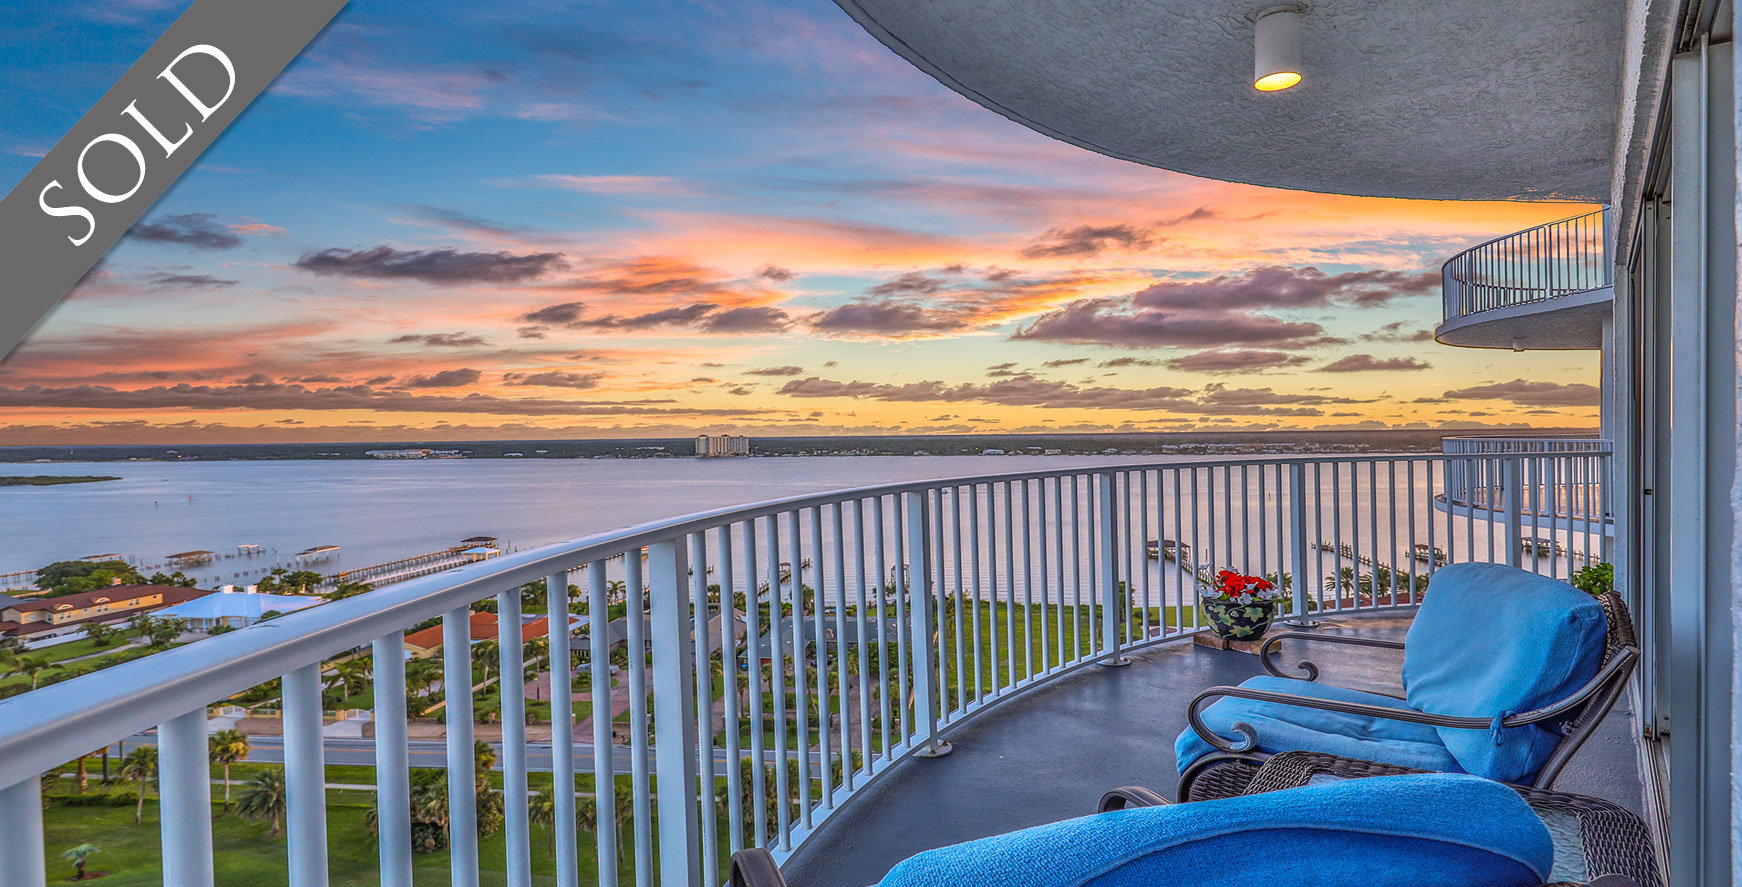 Oceans Grand ocean view condos For Sale at 2 Oceans West Blvd  Daytona Beach  Shores The LUXE Group 386-299-4043